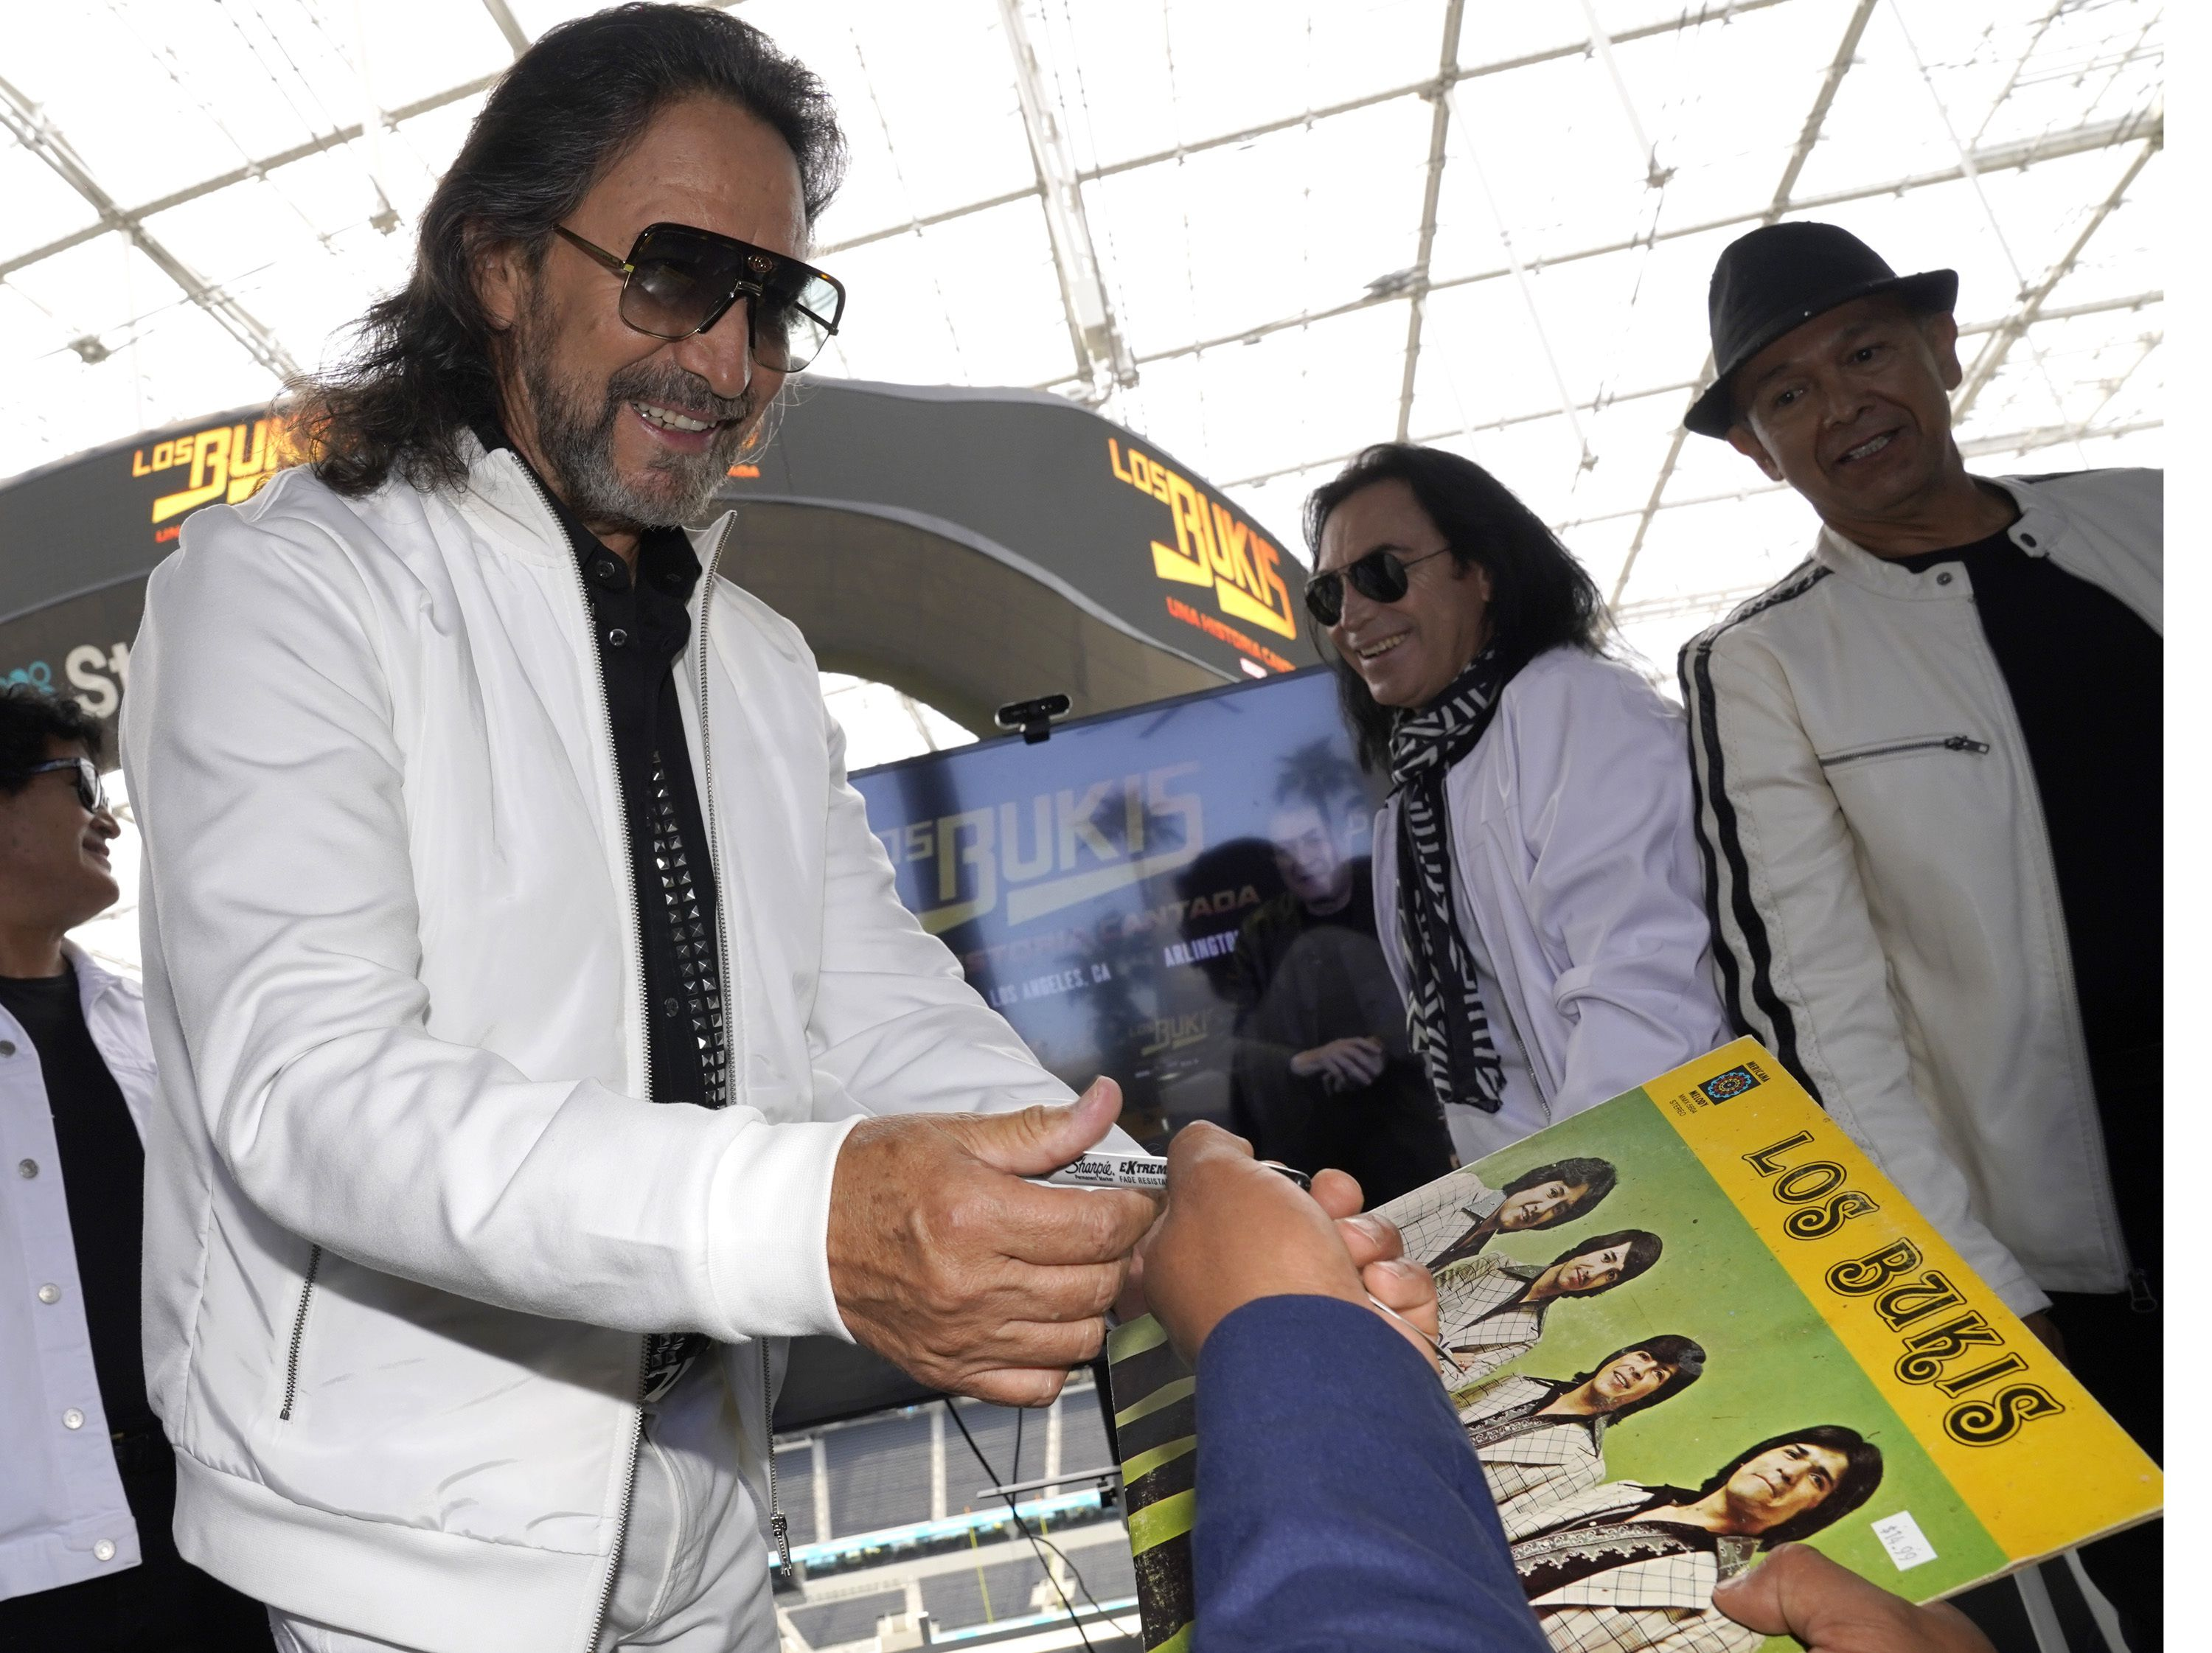 Mexican band Los Bukis to reunite for 1st tour in 25 years